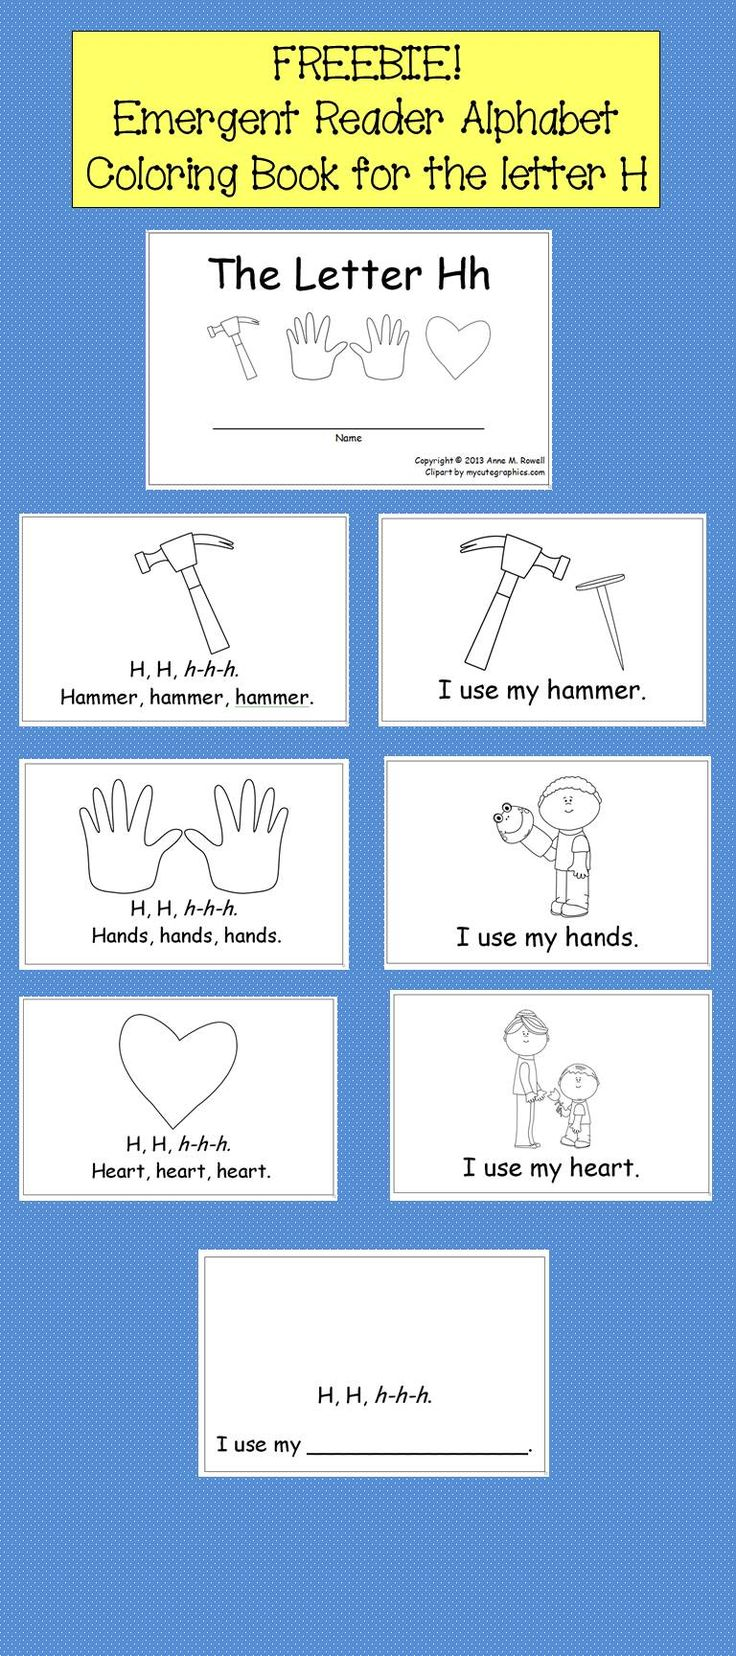 FREEBIE! Emergent Reader Alphabet Coloring Book for the letter H.